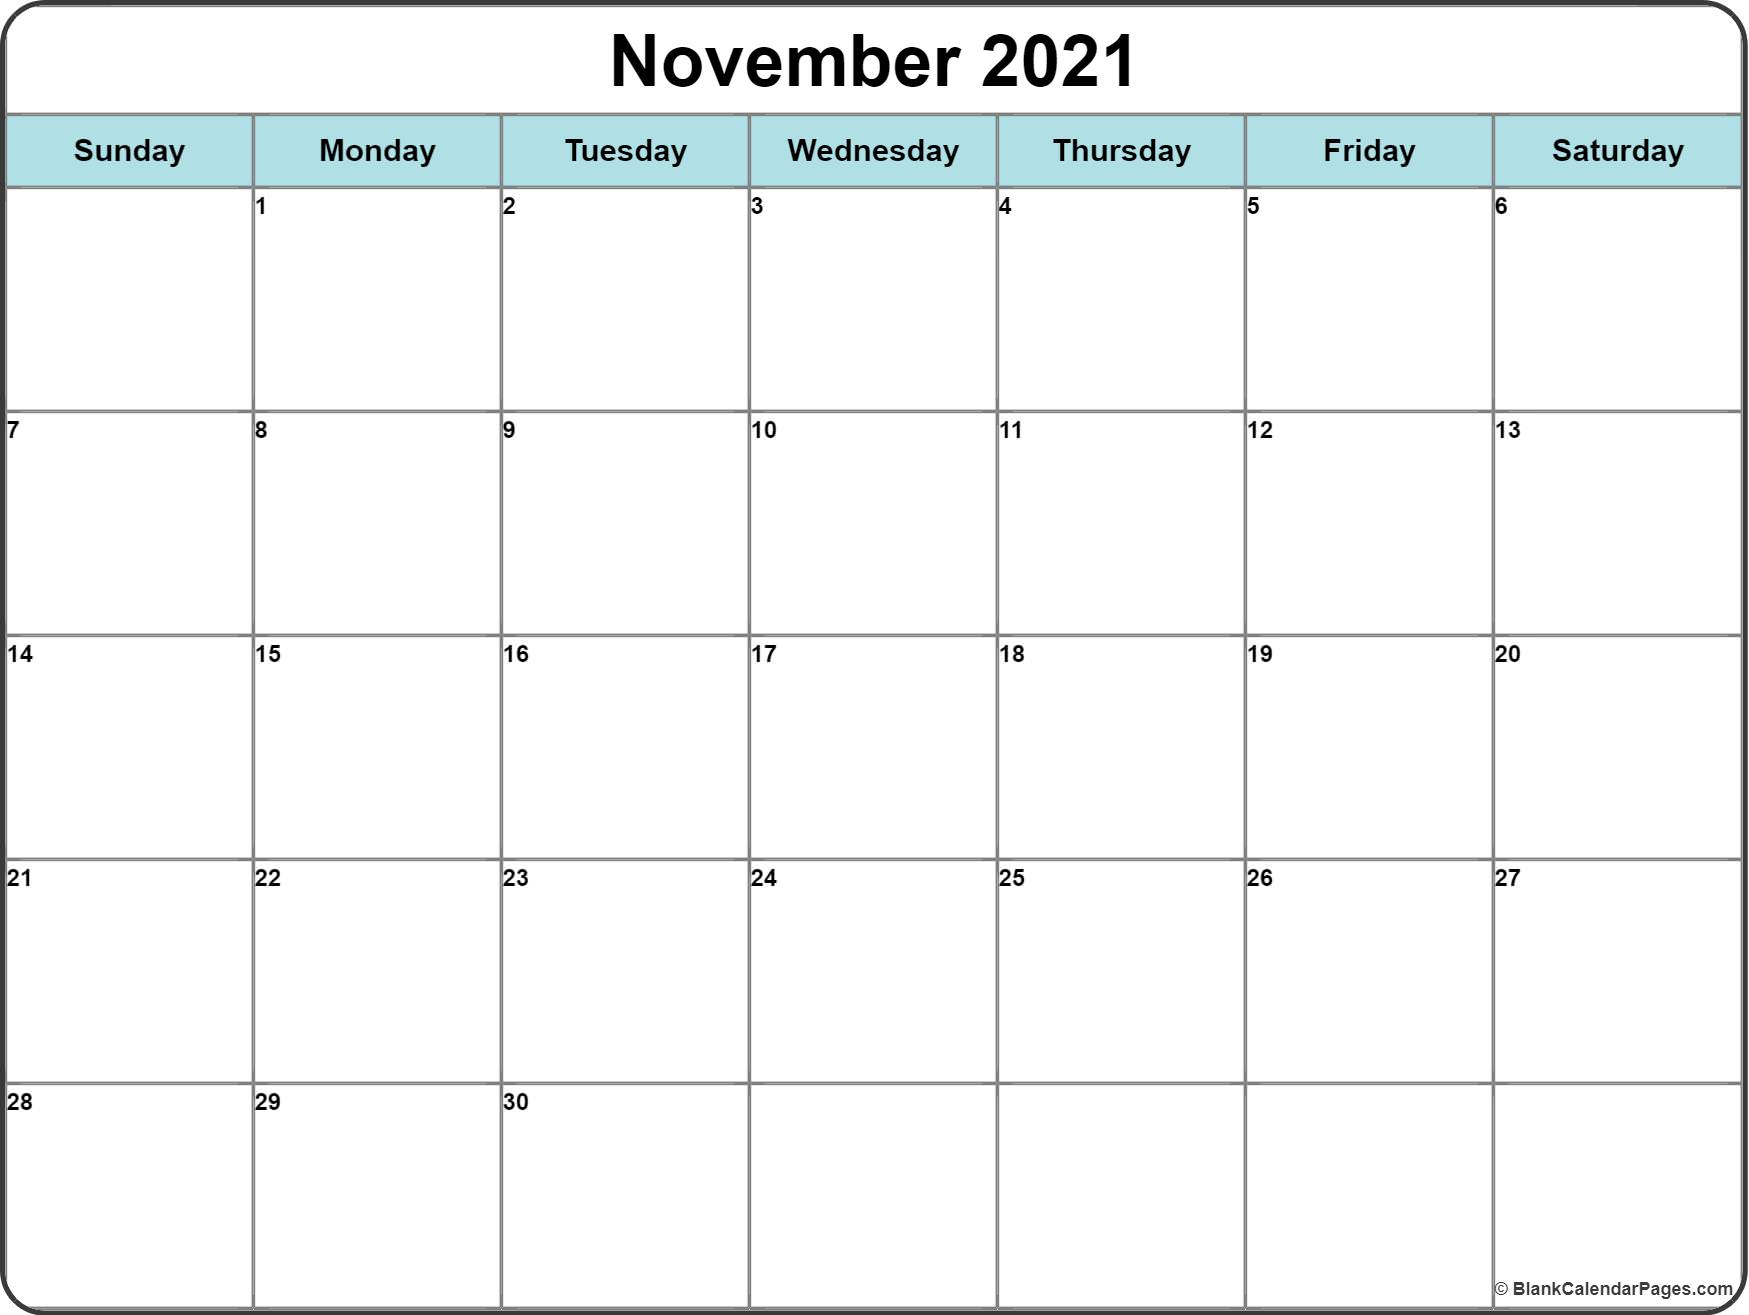 November 2019 calendar * 50+ templates of printable calendars